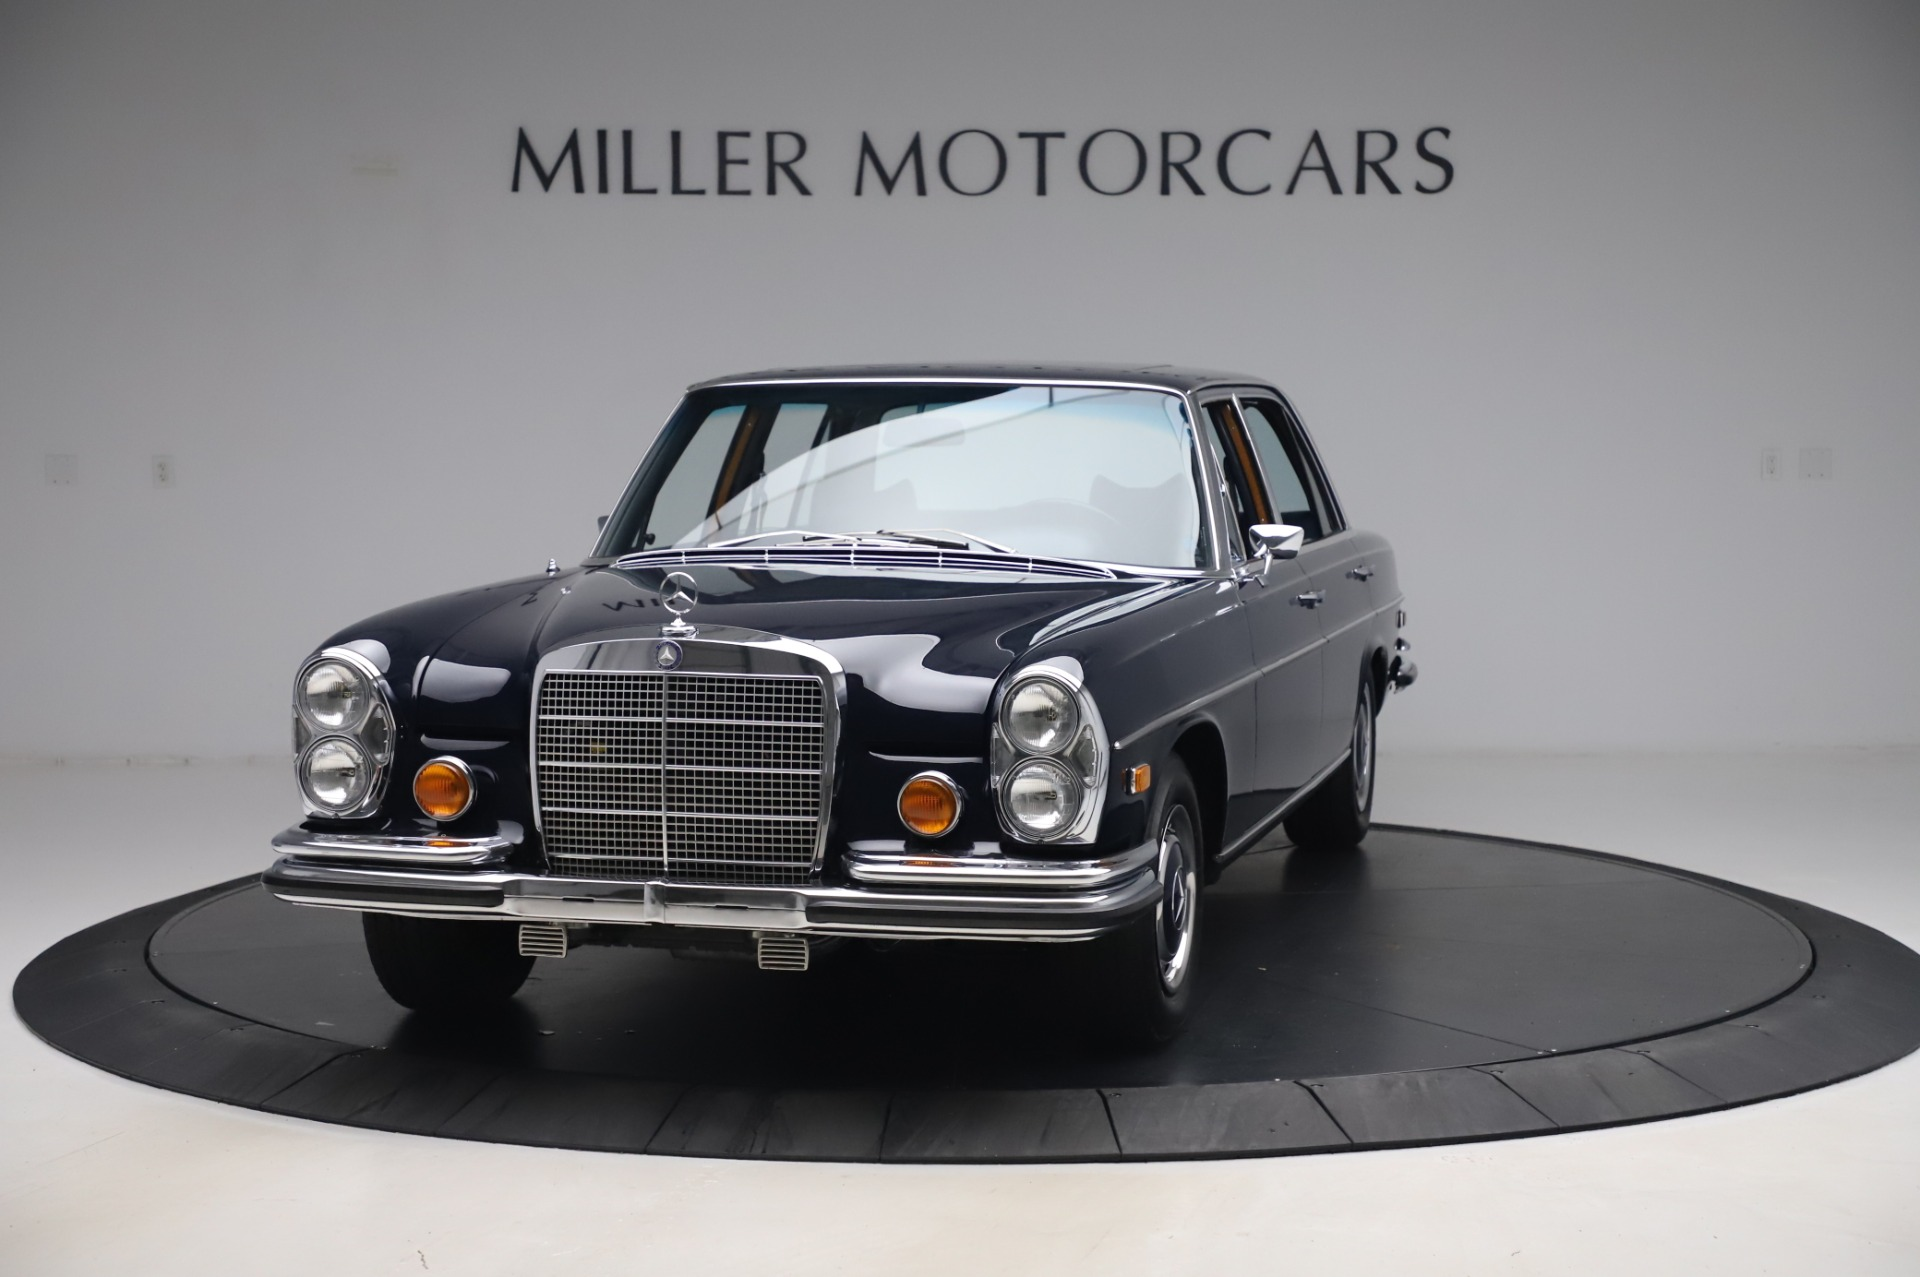 Used 1971 Mercedes-Benz 300 SEL 6.3 for sale $117,000 at Aston Martin of Greenwich in Greenwich CT 06830 1